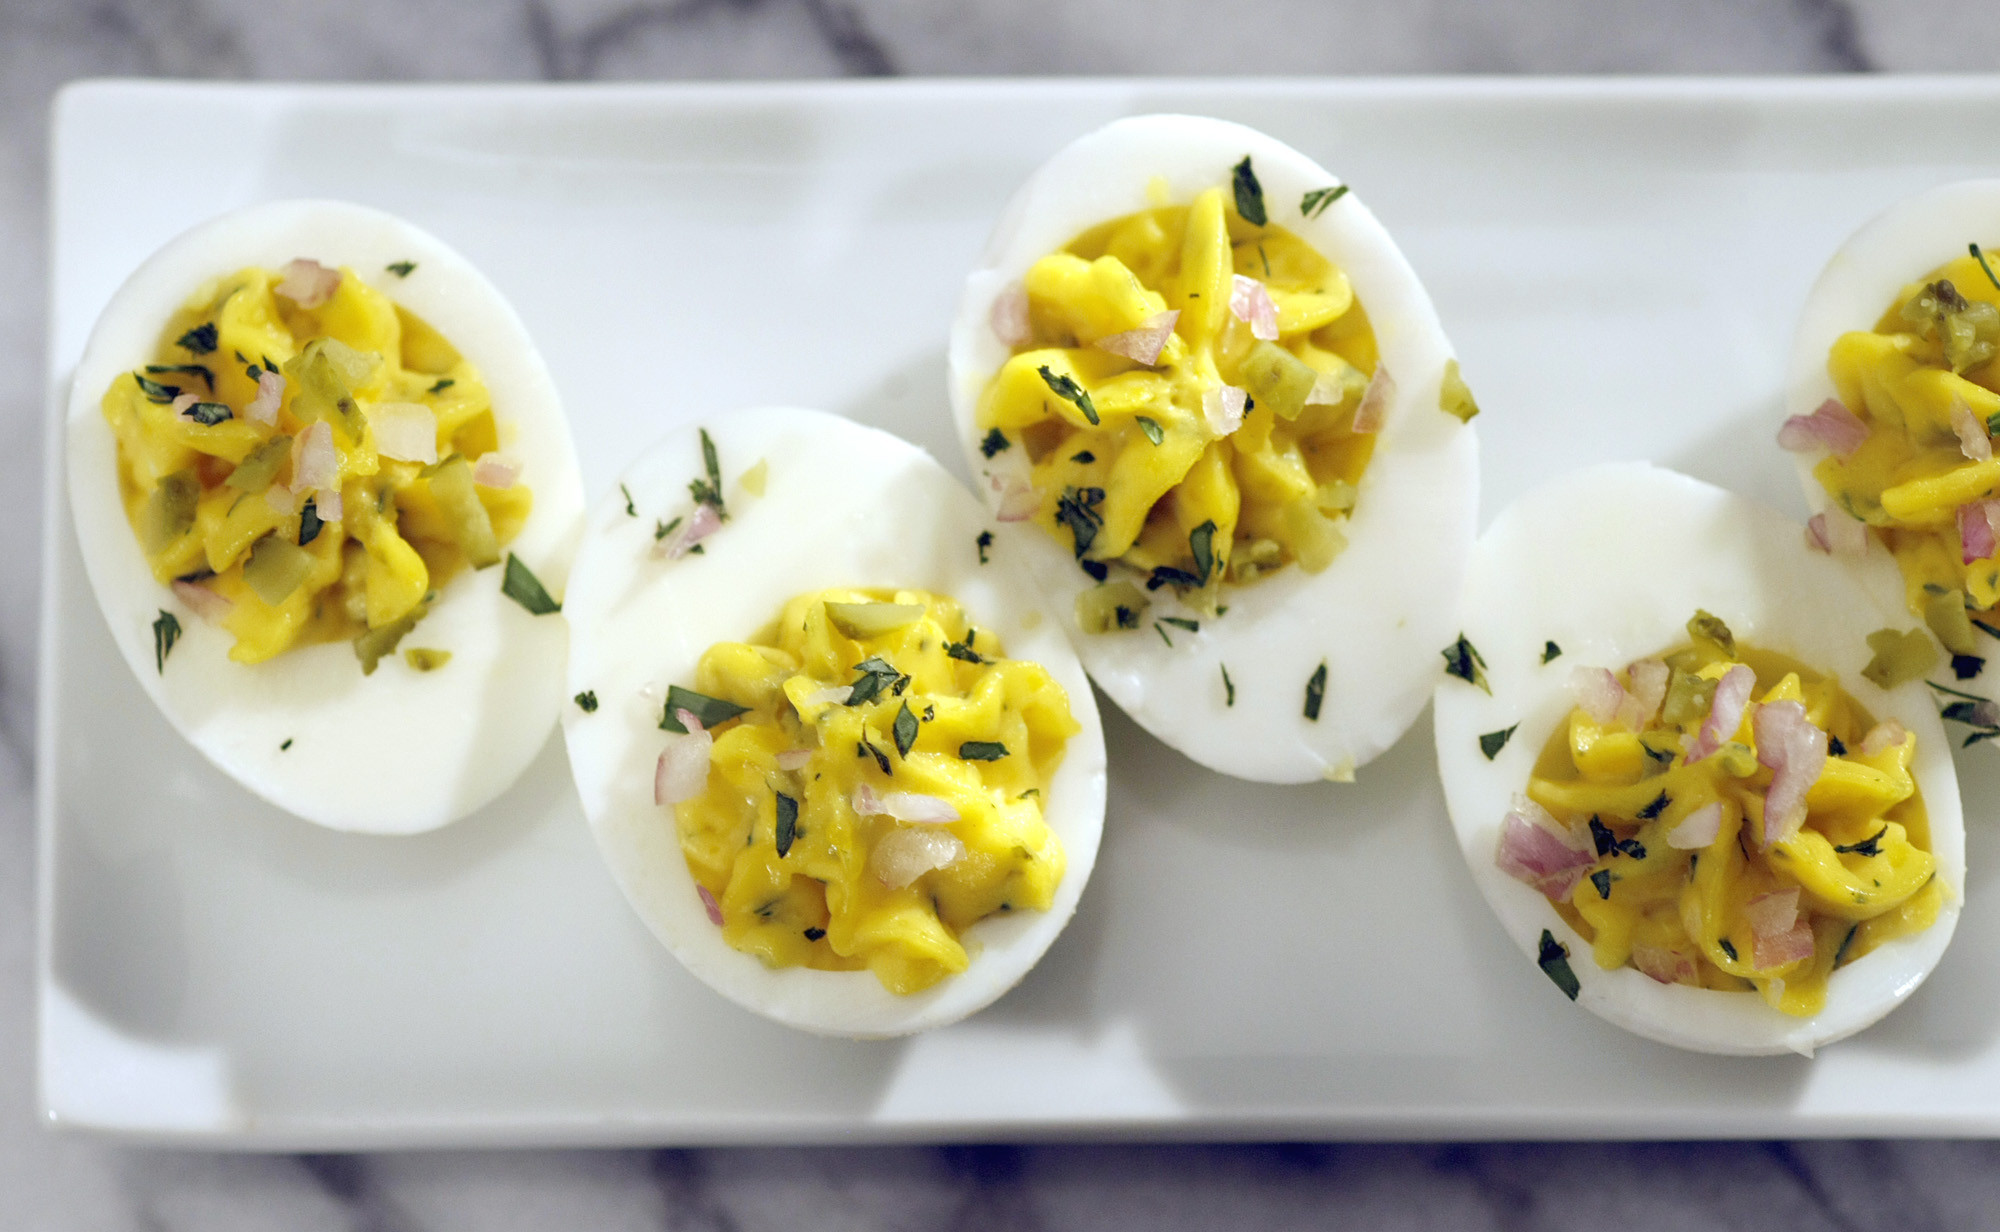 Deviled eggs with tarrragon and cornichons.